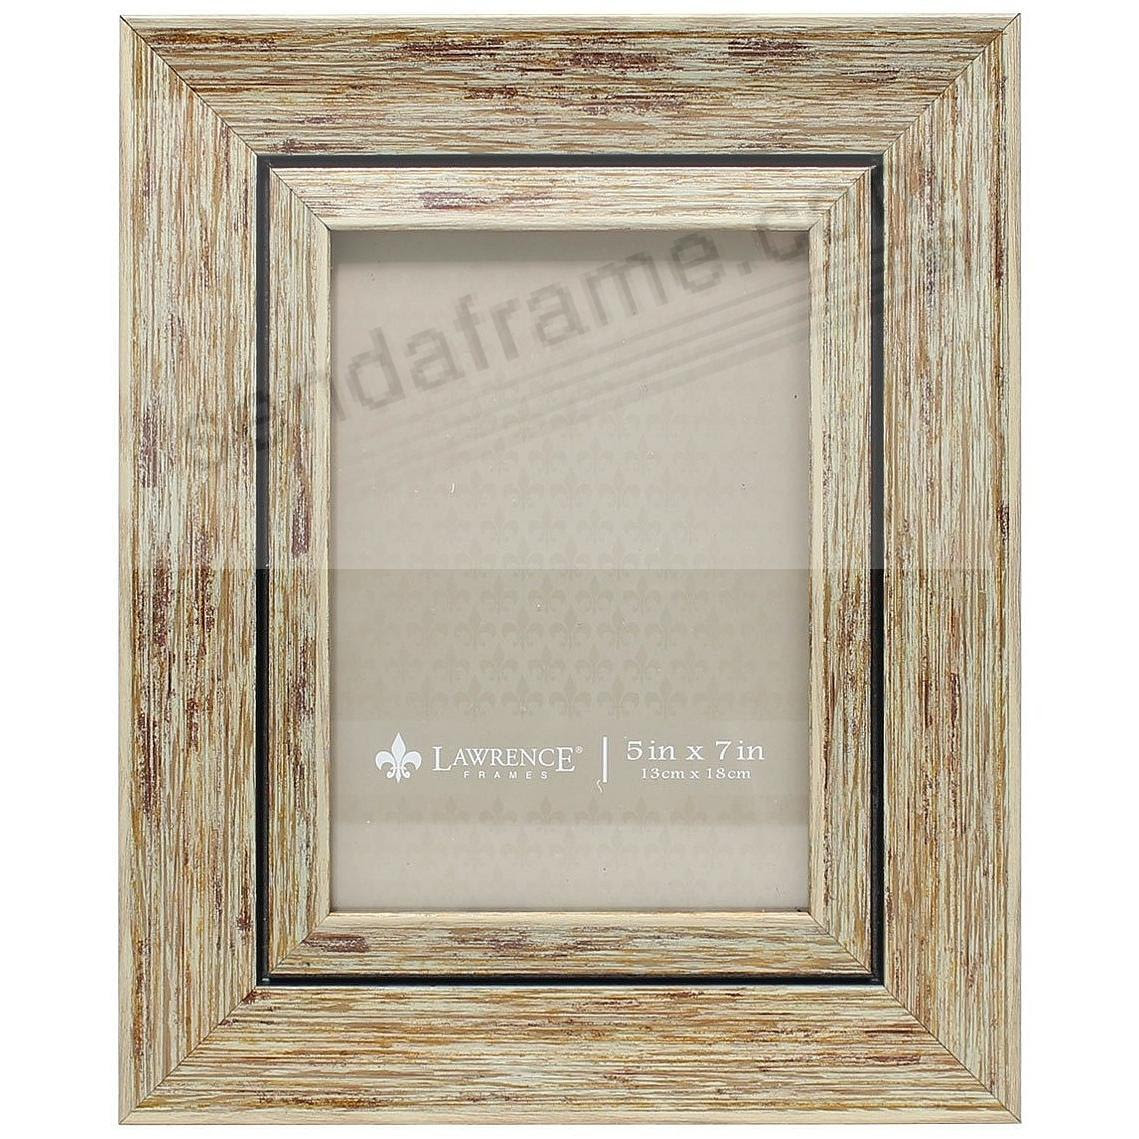 Weatheredantique Natural Angled Wood 5x7 Frame By Lawrence